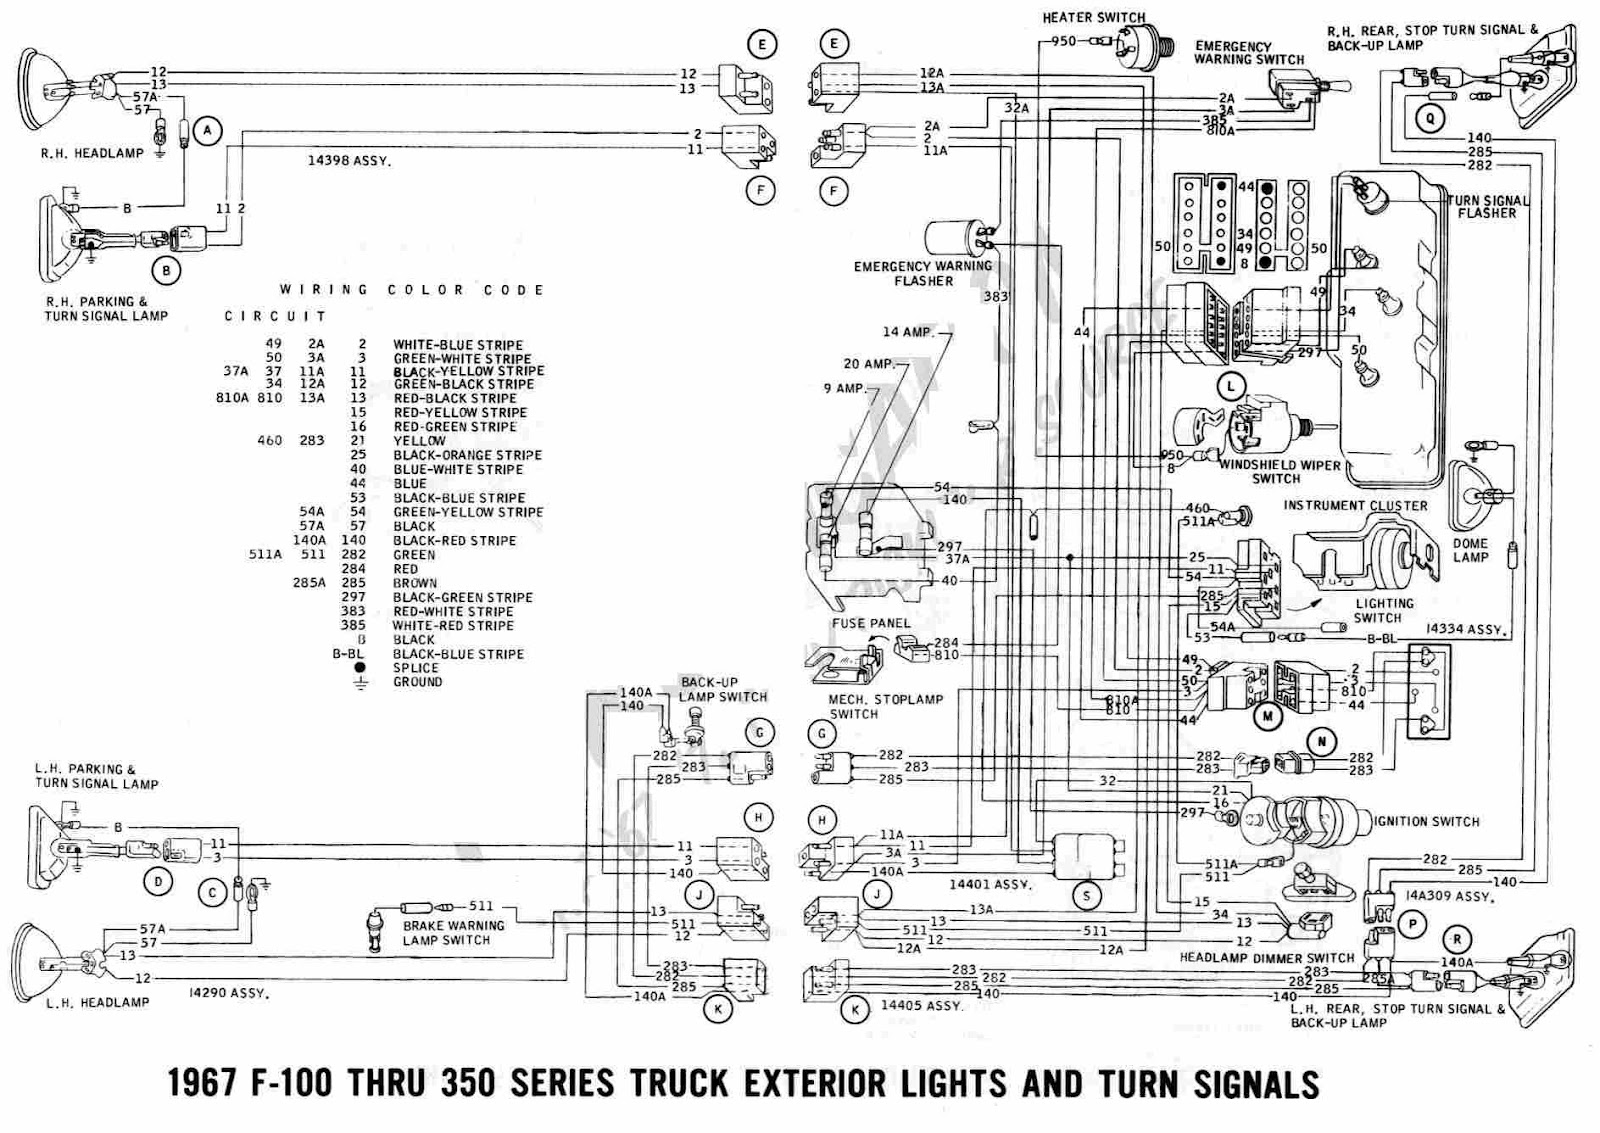 Ford F 100 Through F 350 Truck 1967 Exterior Lights and Turn Signals Wiring Diagram ford f350 trailer wiring harness diagram periodic tables 2004 ford f350 wiring diagram at soozxer.org